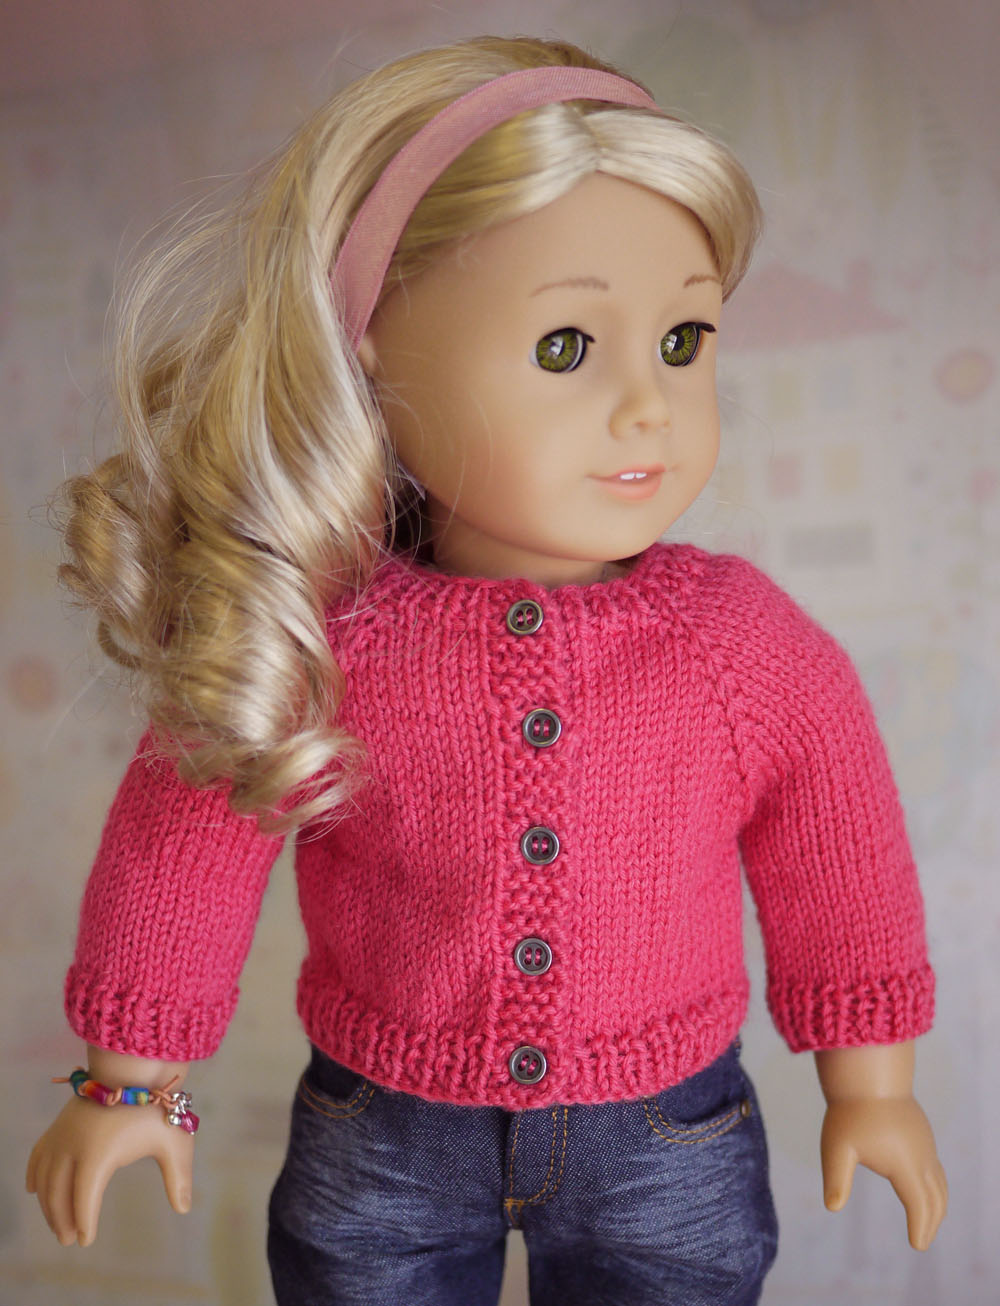 Sweater Knitting Patterns Free : American Girl Doll Cardigan Sweater Knitting Pattern Cindy Rice Designs